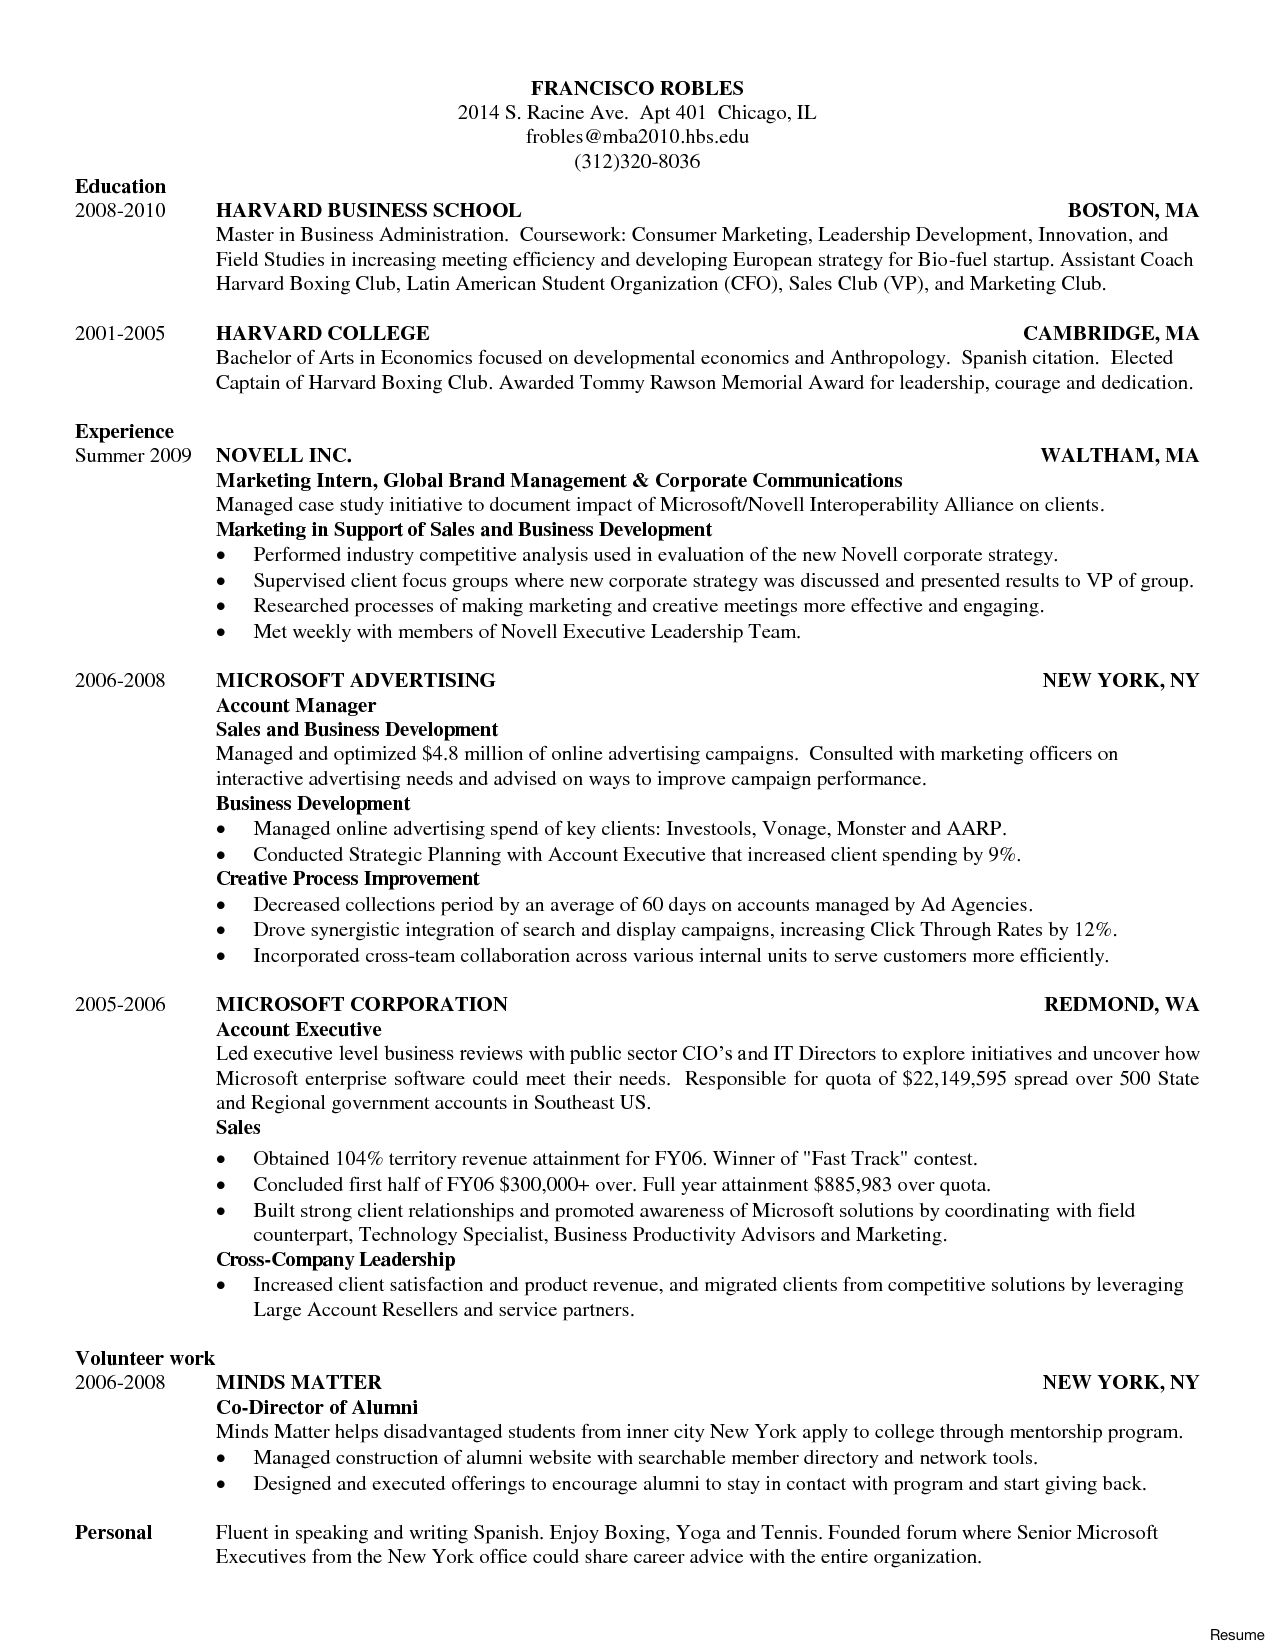 cv template harvard resume format business school examples copywriter tongue and quill Resume Harvard Resume Template